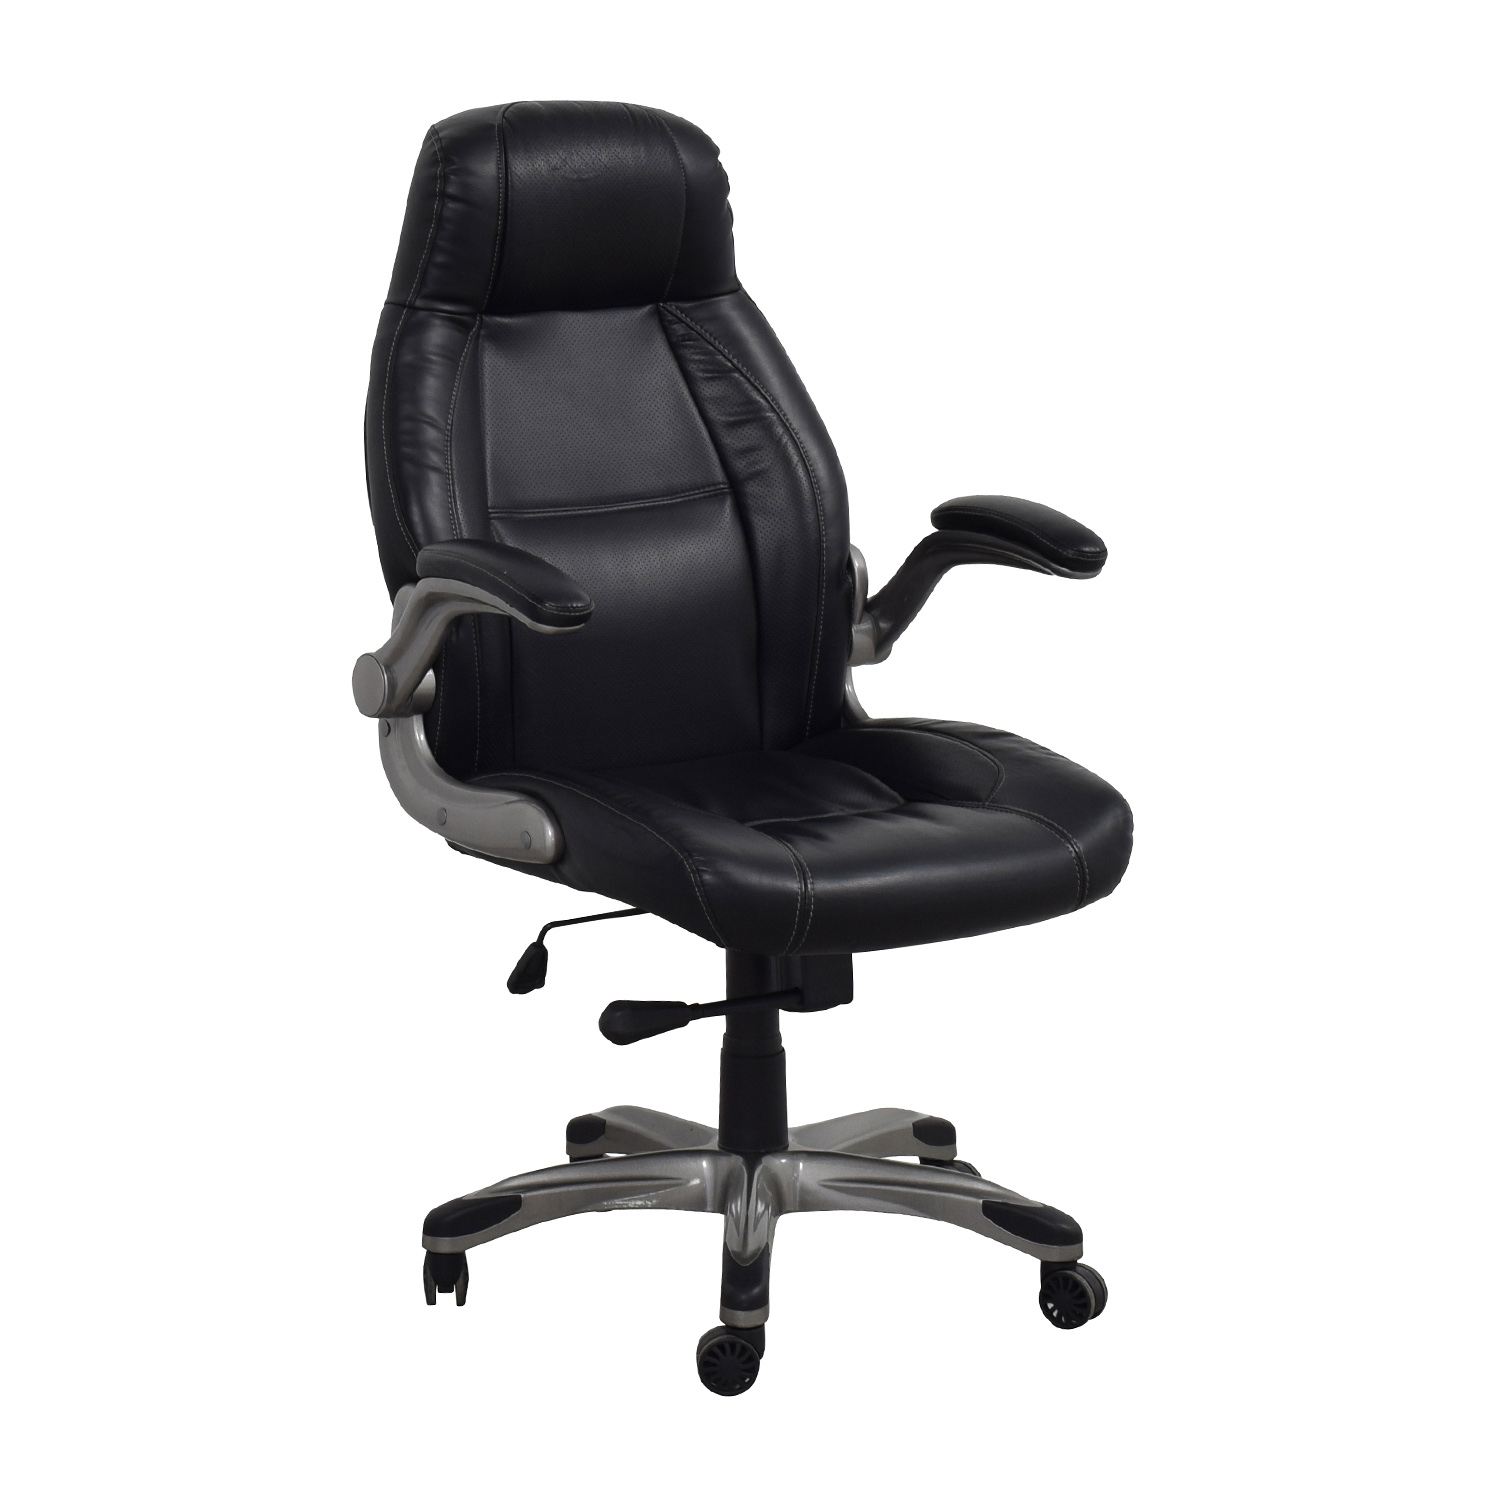 Executive Chair 64 Off Staples Staples Torrent High Back Executive